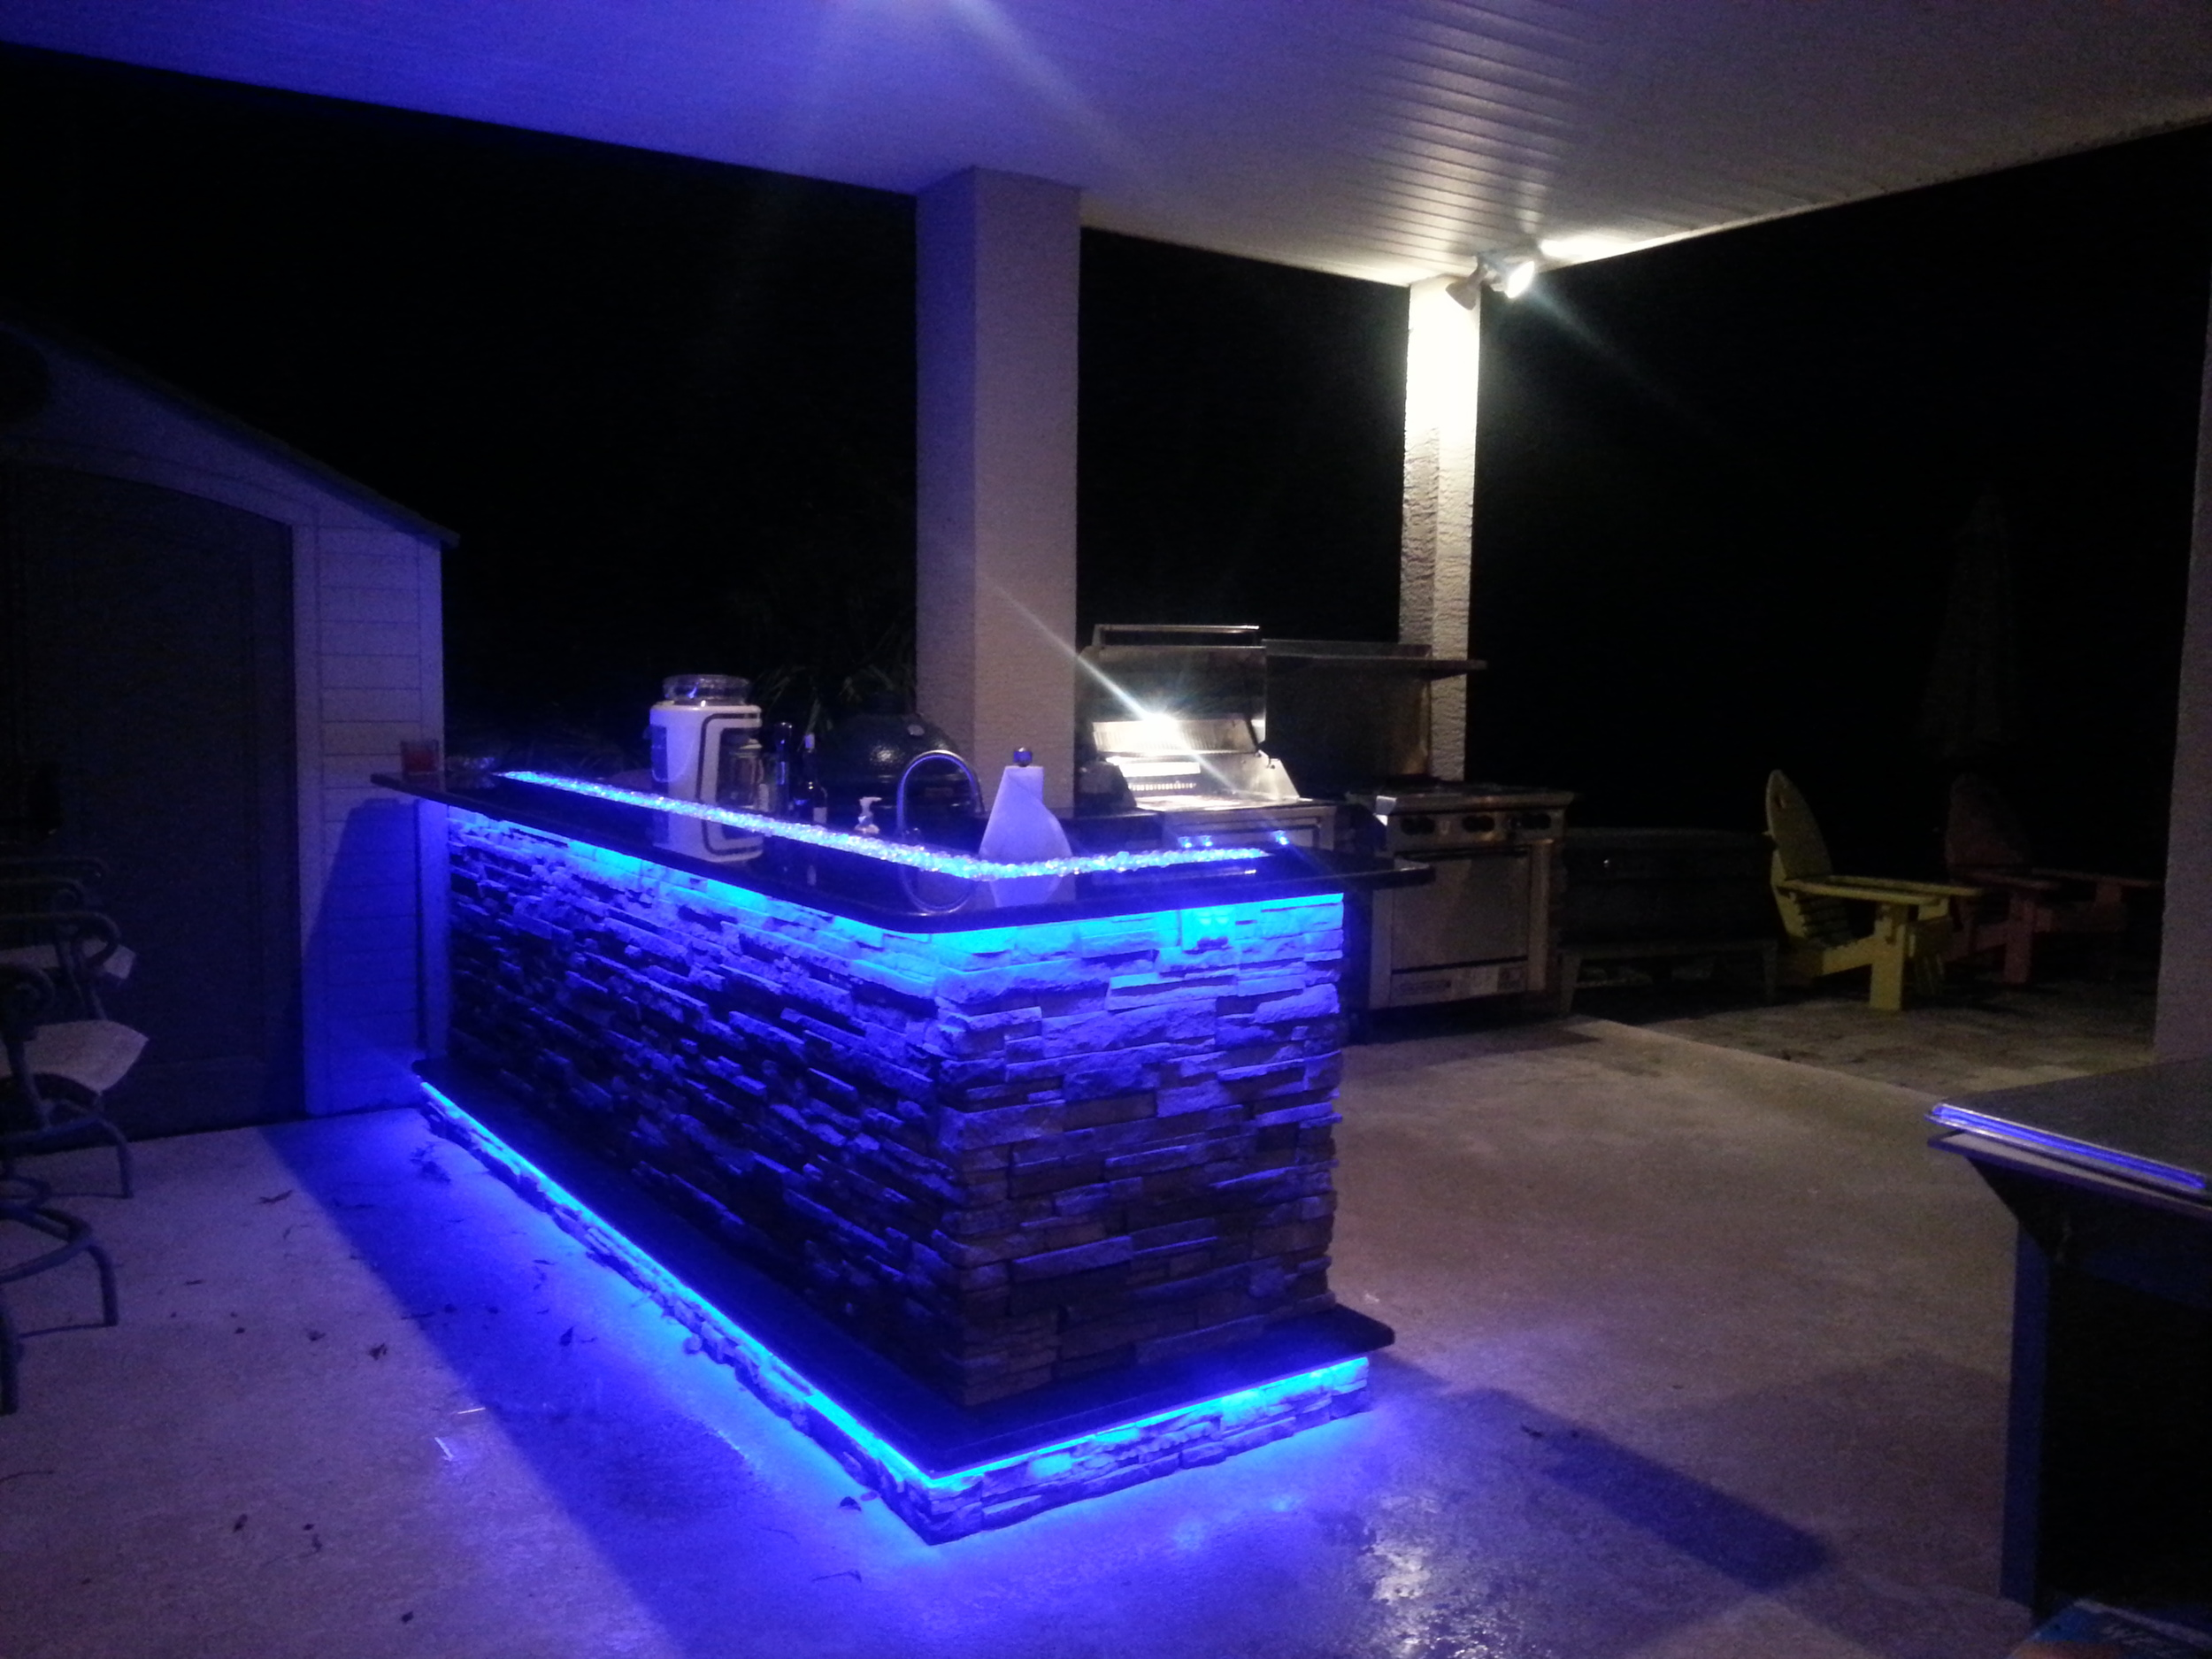 Outdoor Kitchens with LED Lighting (36 Photos) - Premier ...